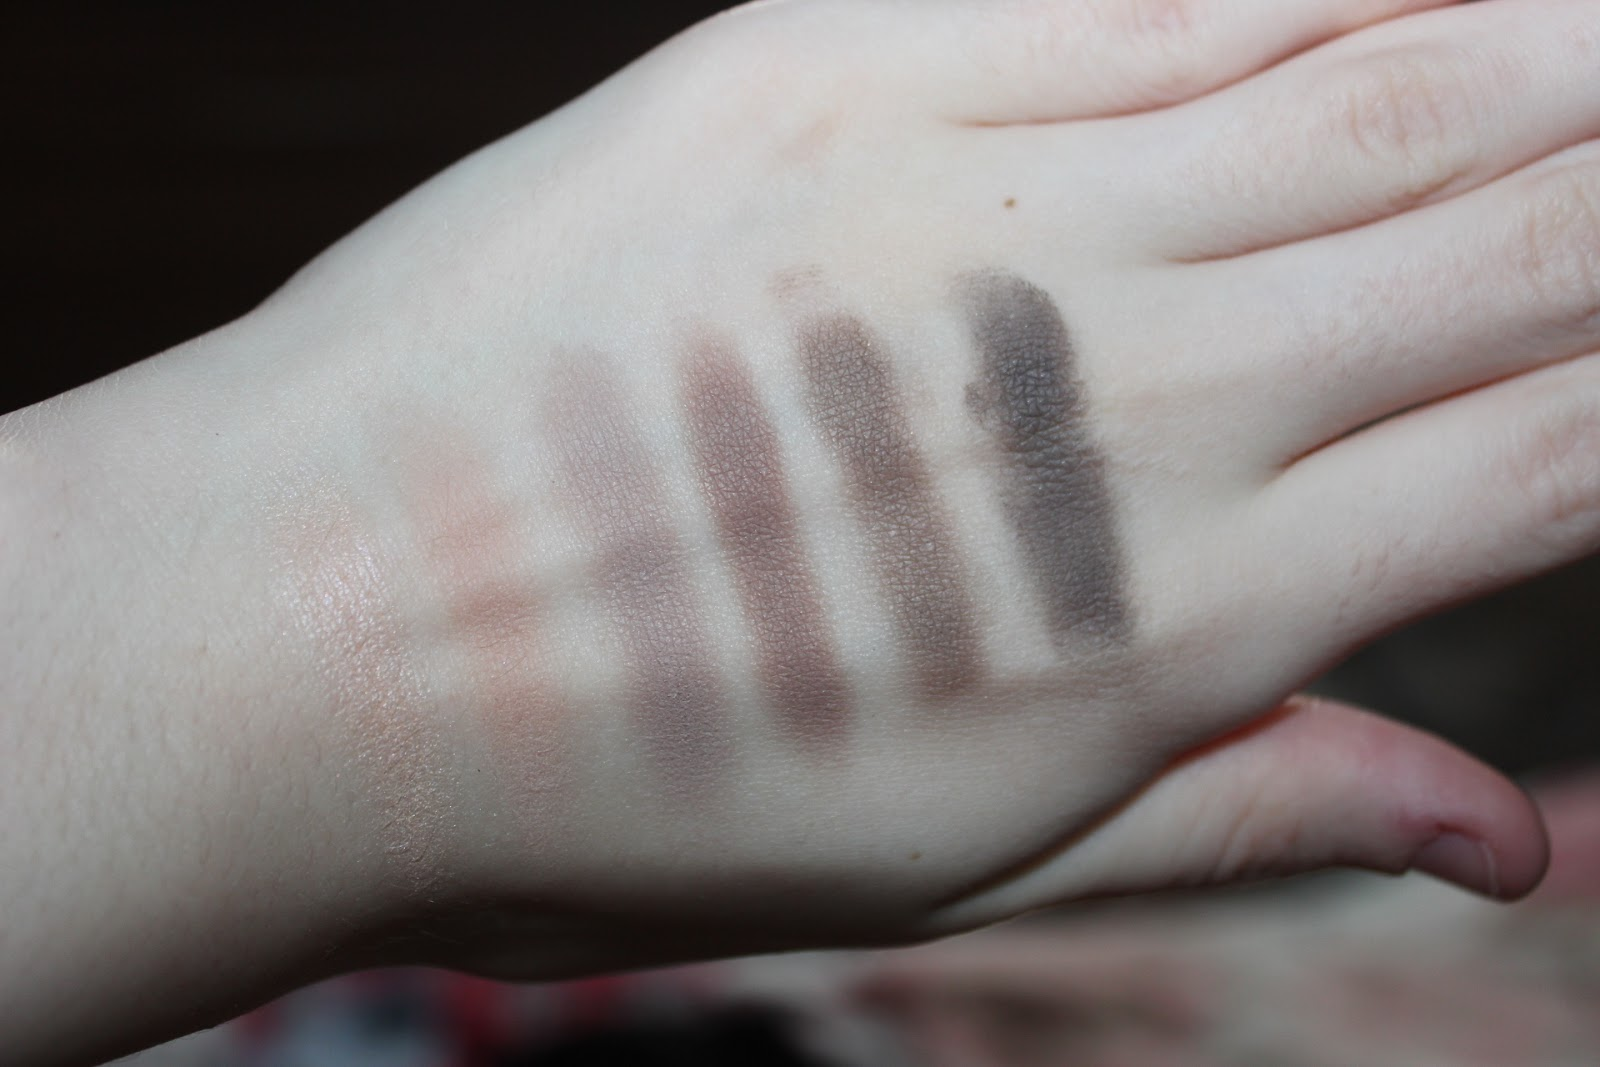 Urban Decay Naked Basics 2 review with swatches